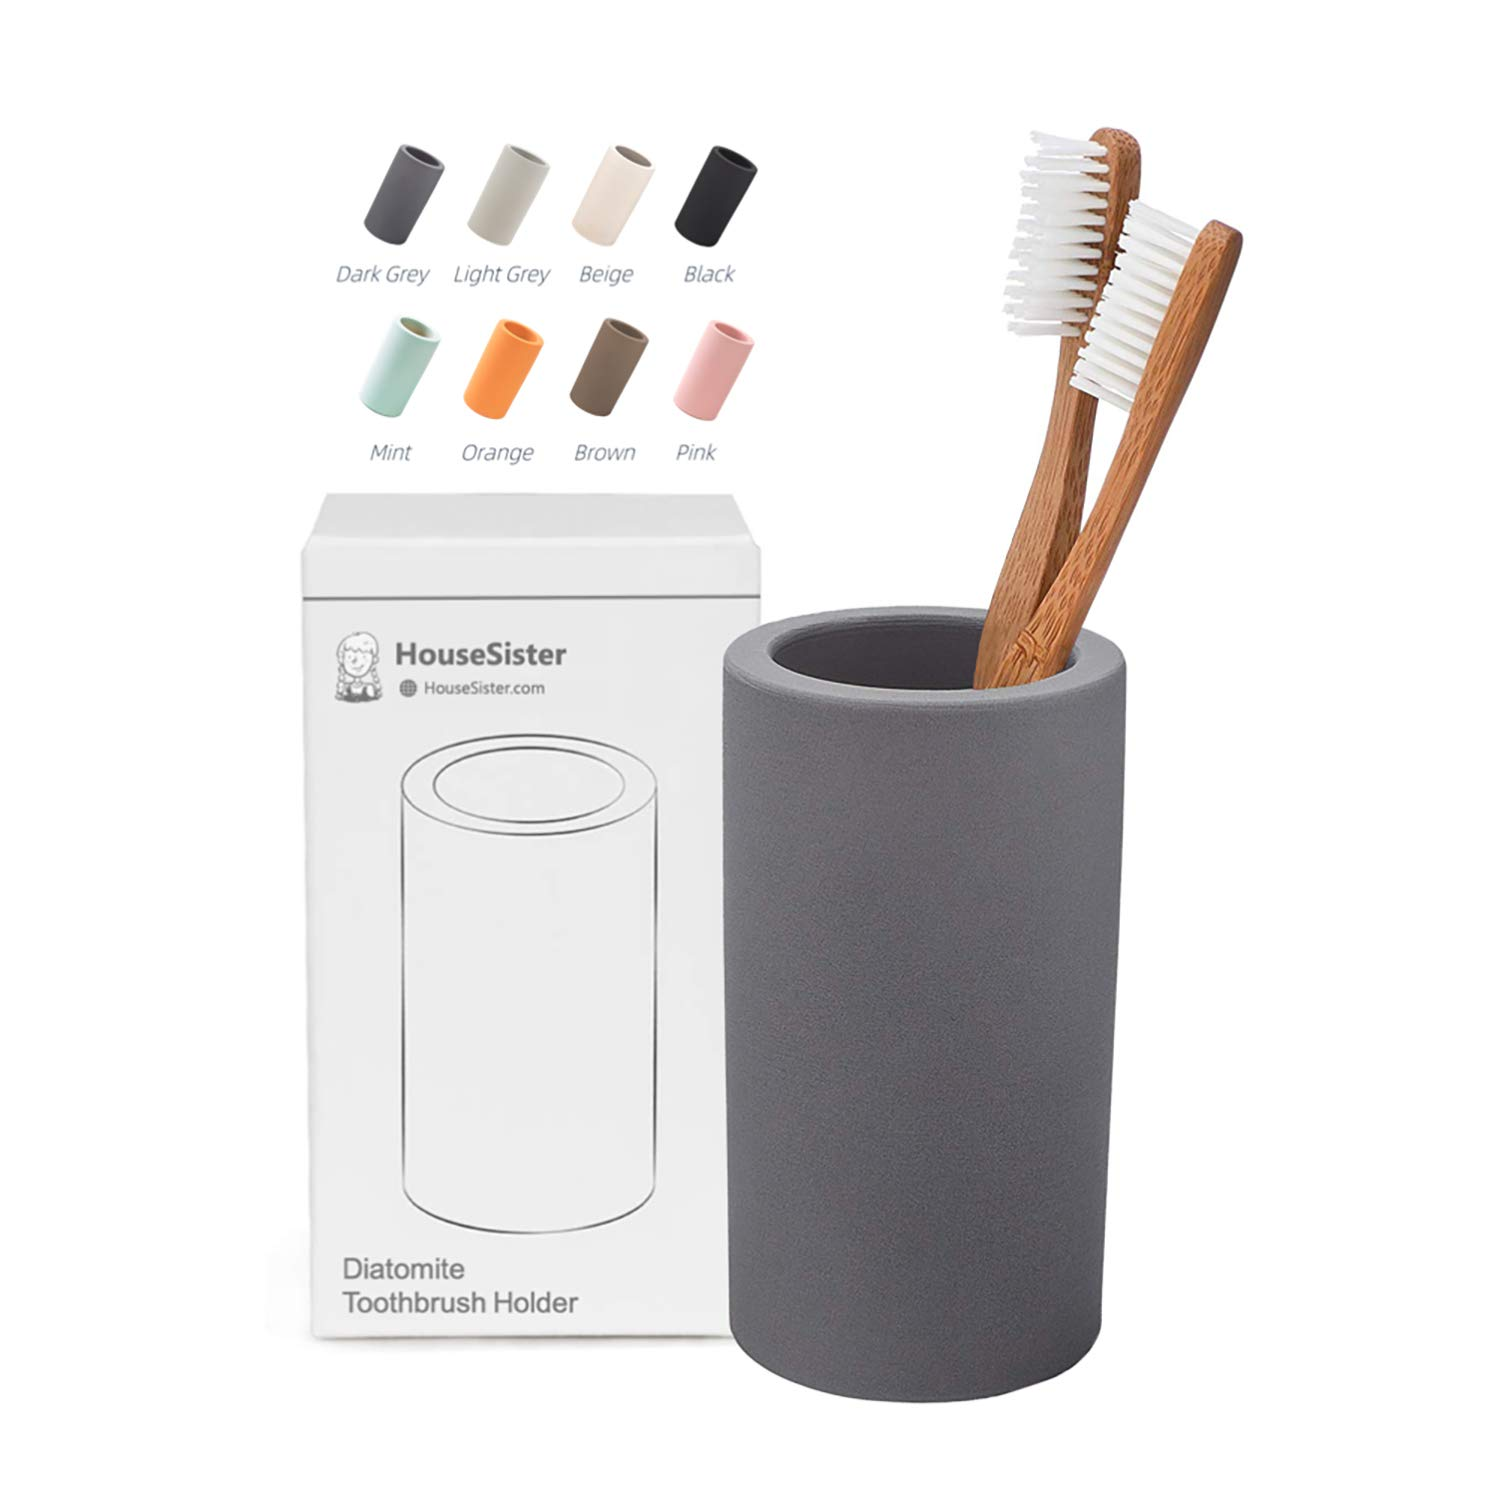 HouseSister Organic Diatomite Toothbrush Toothpaste Makeup Brushes Razors Holder Grey Bathroom Countertop Organizer Stand Cup Organizer (Dark Grey) by HouseSister